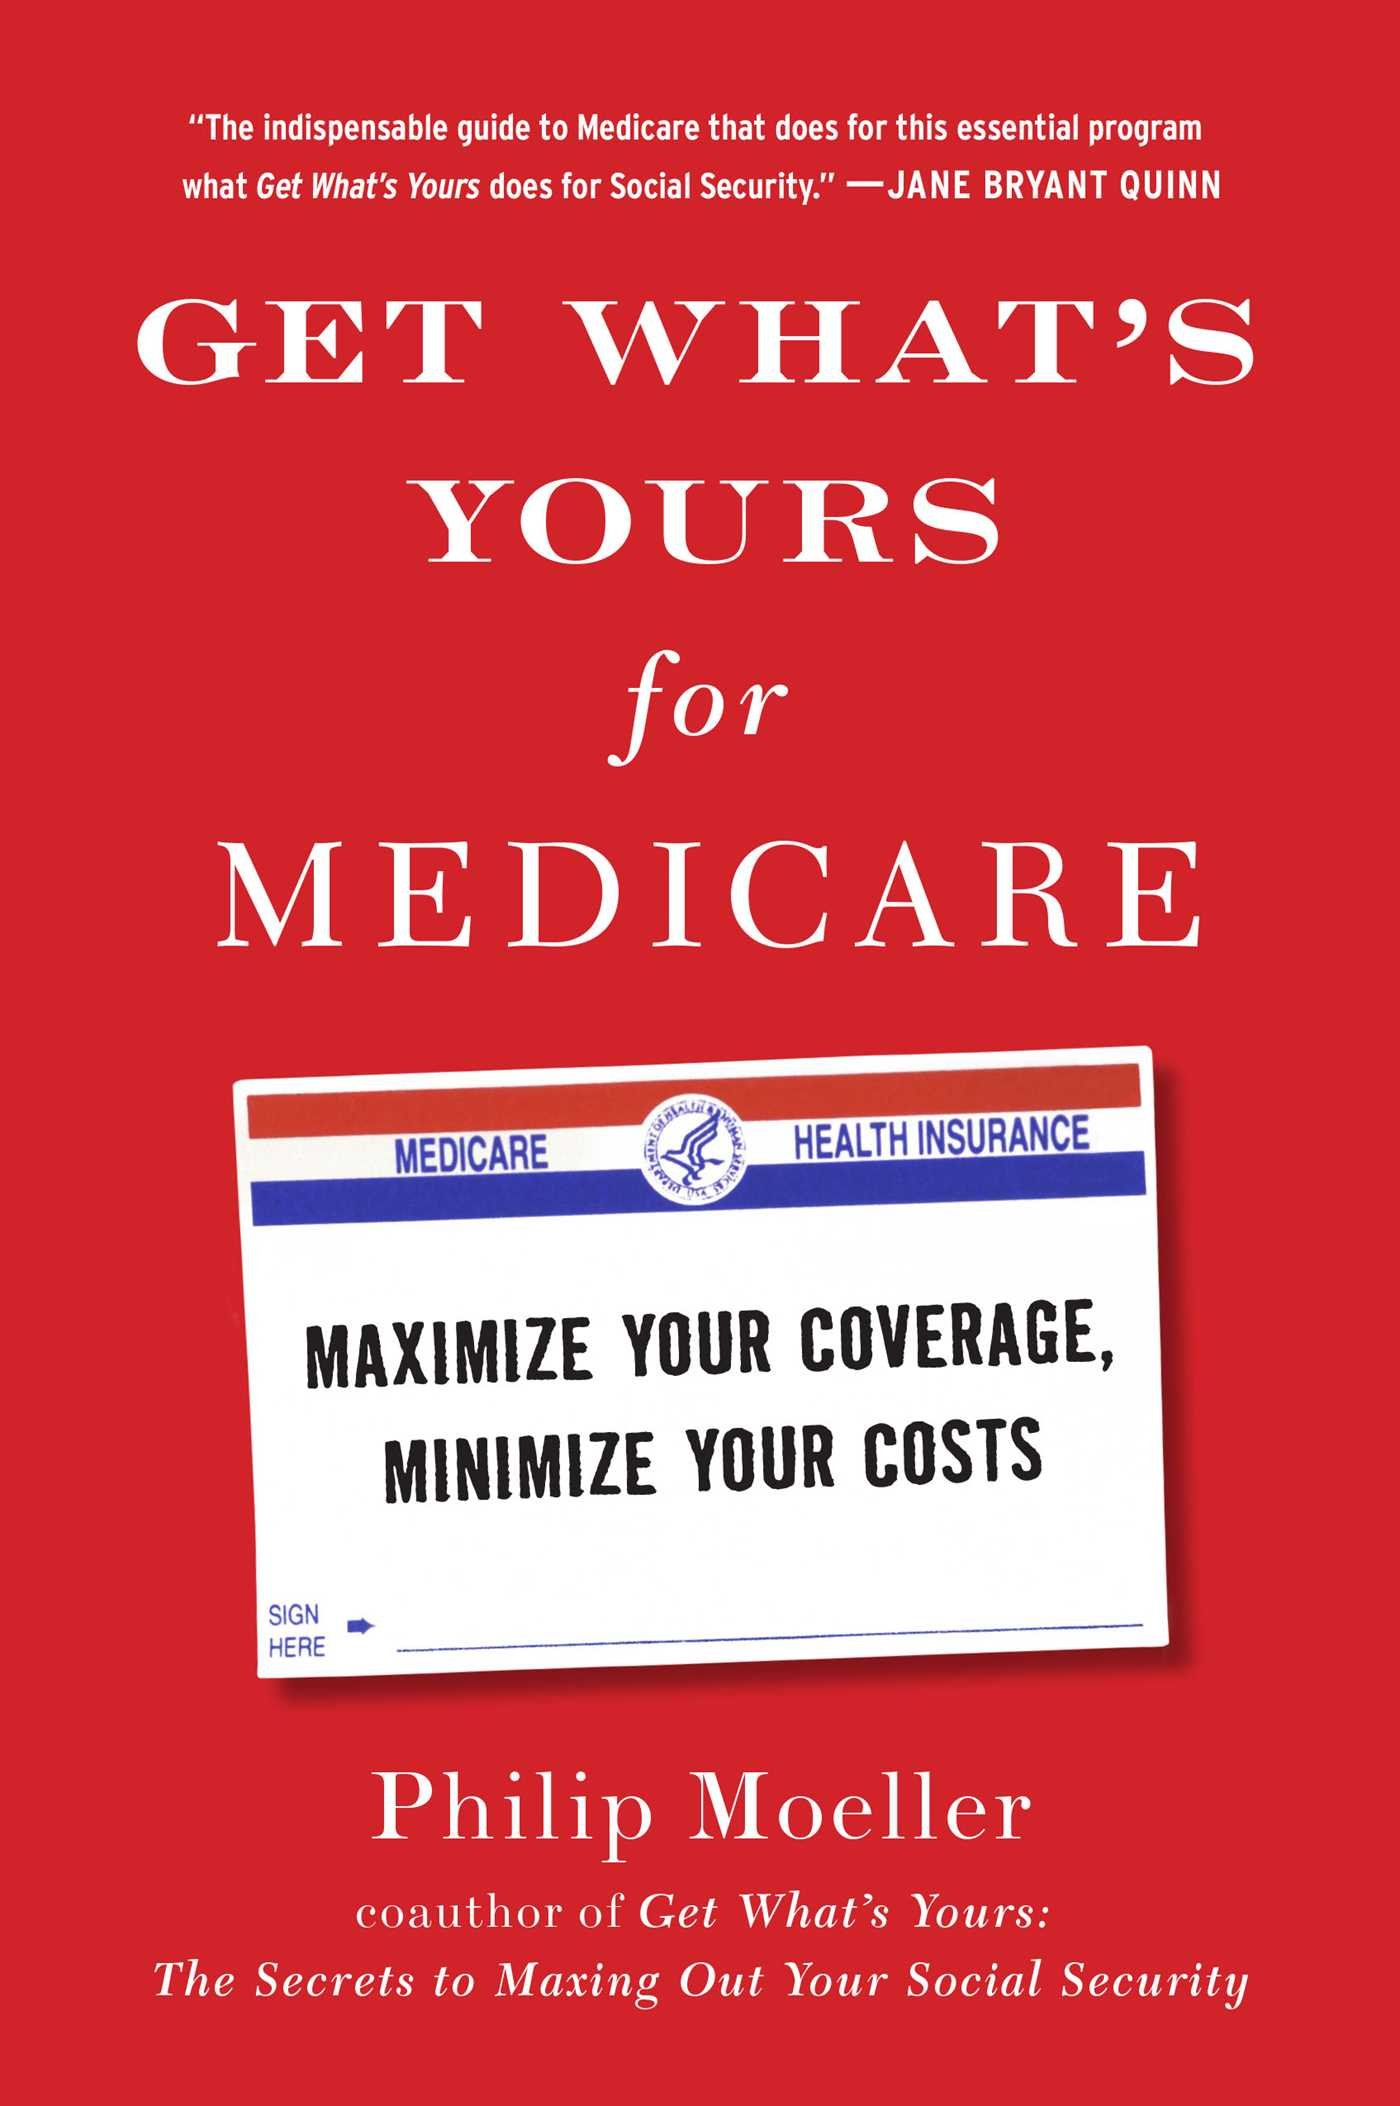 Get What's Yours For Medicare: Maximize Your Coverage, Minimize Your Costs  (the Get What's Yours Series): Philip Moeller: 9781501124006: Amazon:  Books